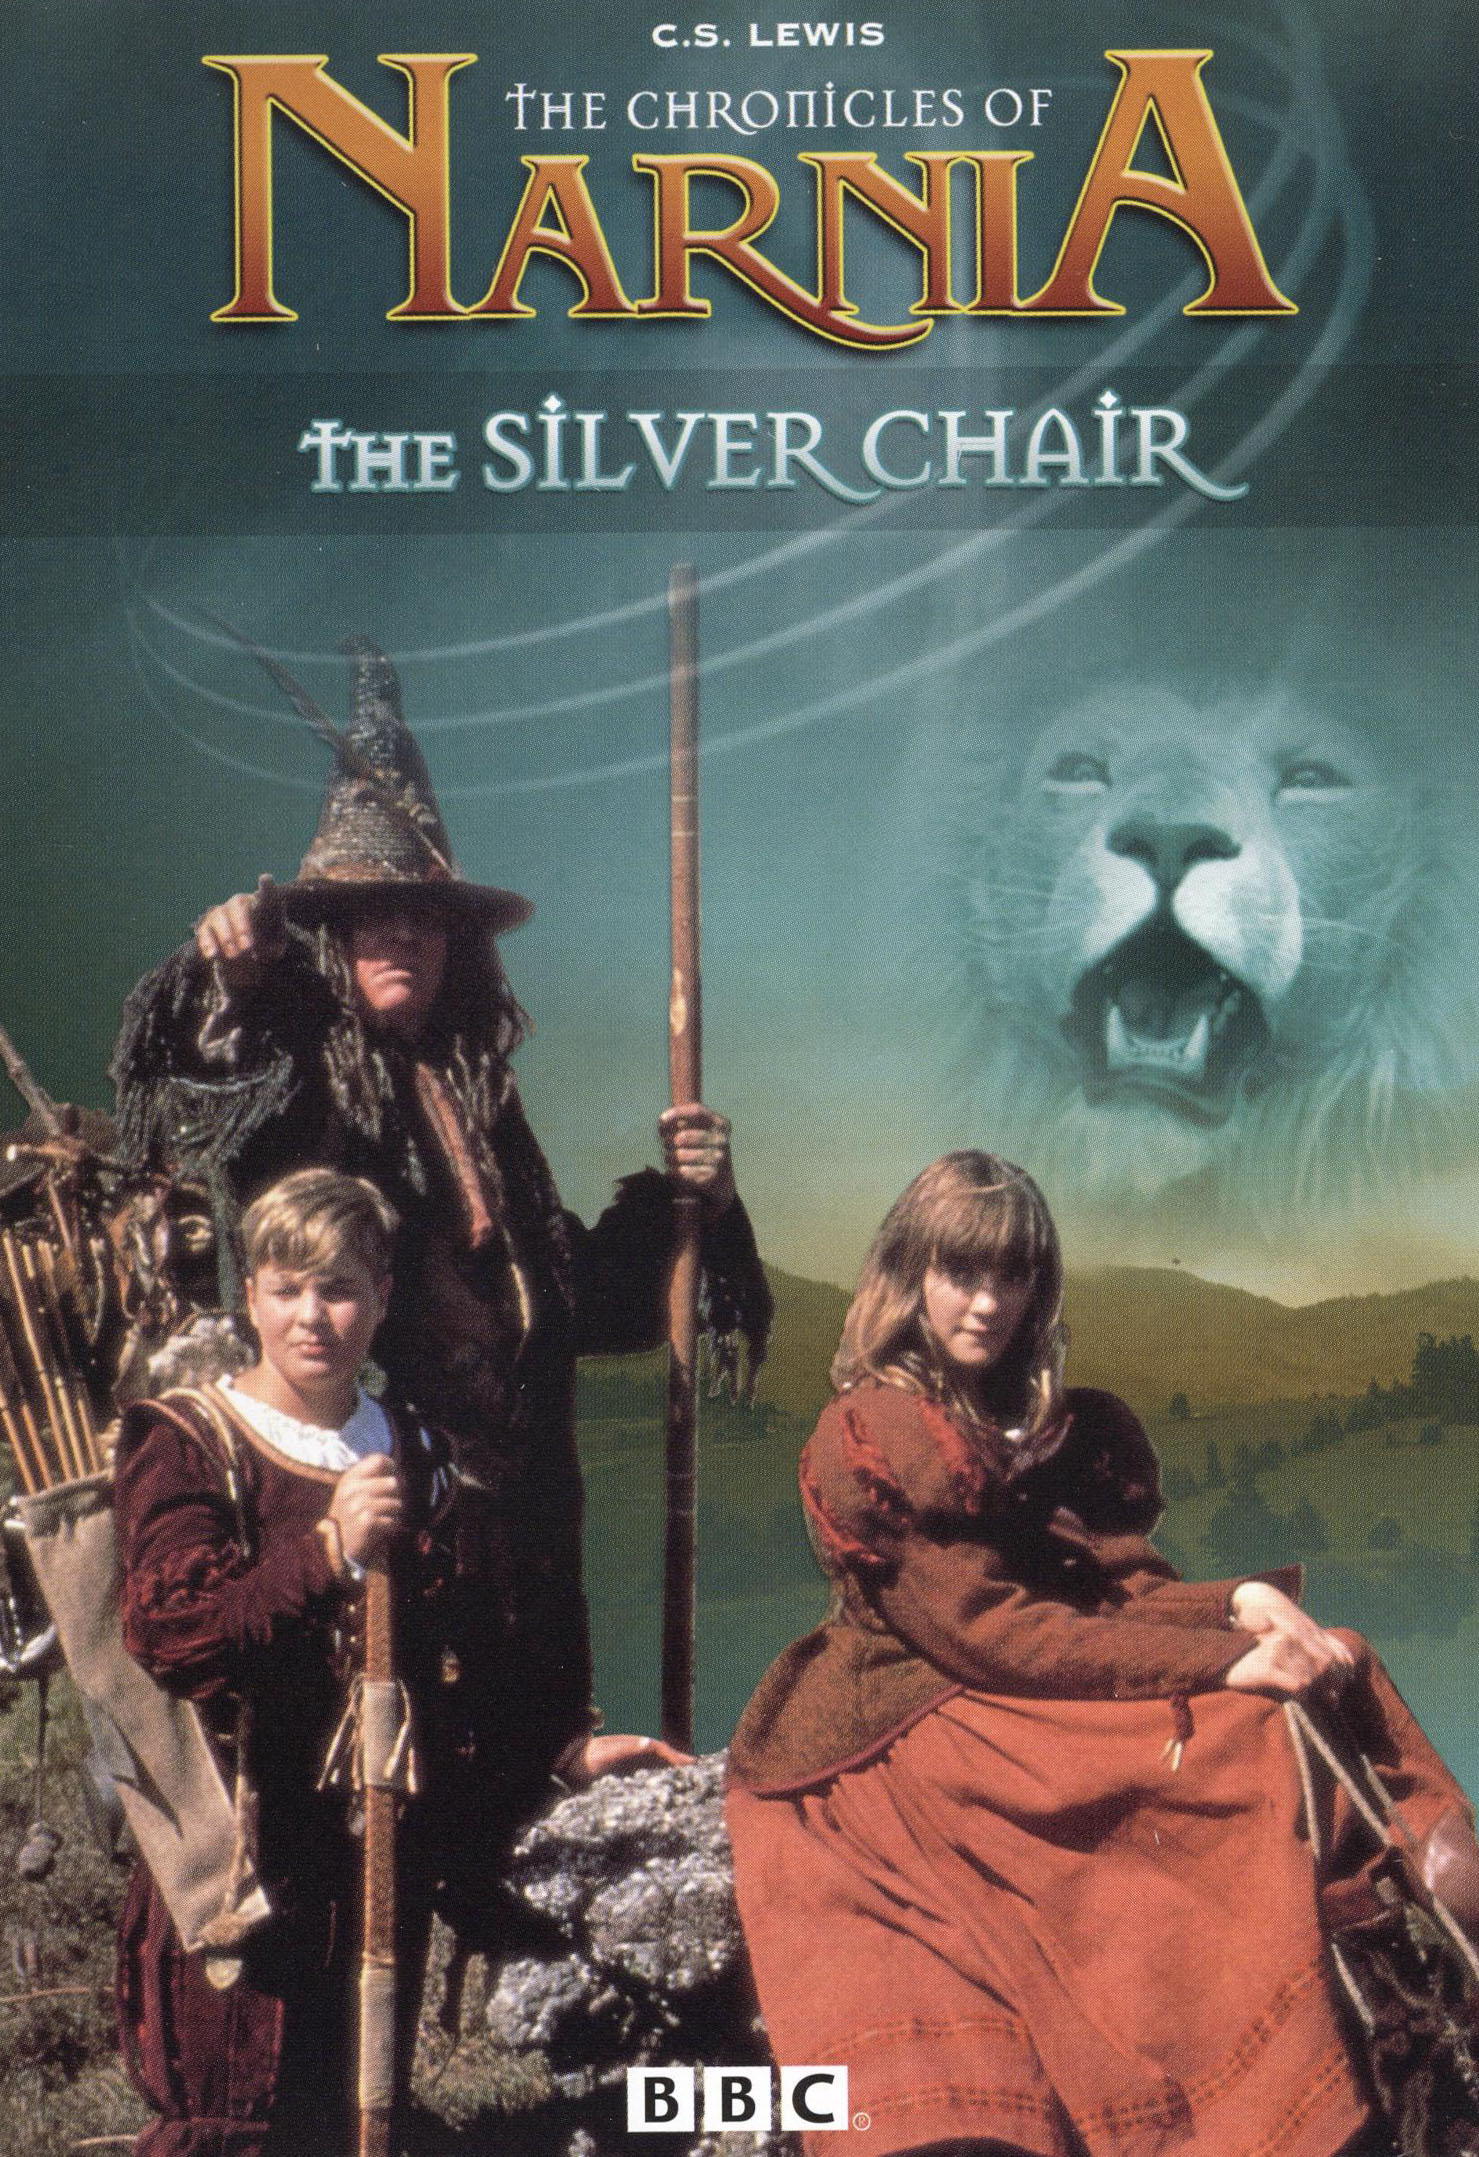 The silver chair bbc - The Chronicles Of Narnia The Silver Chair